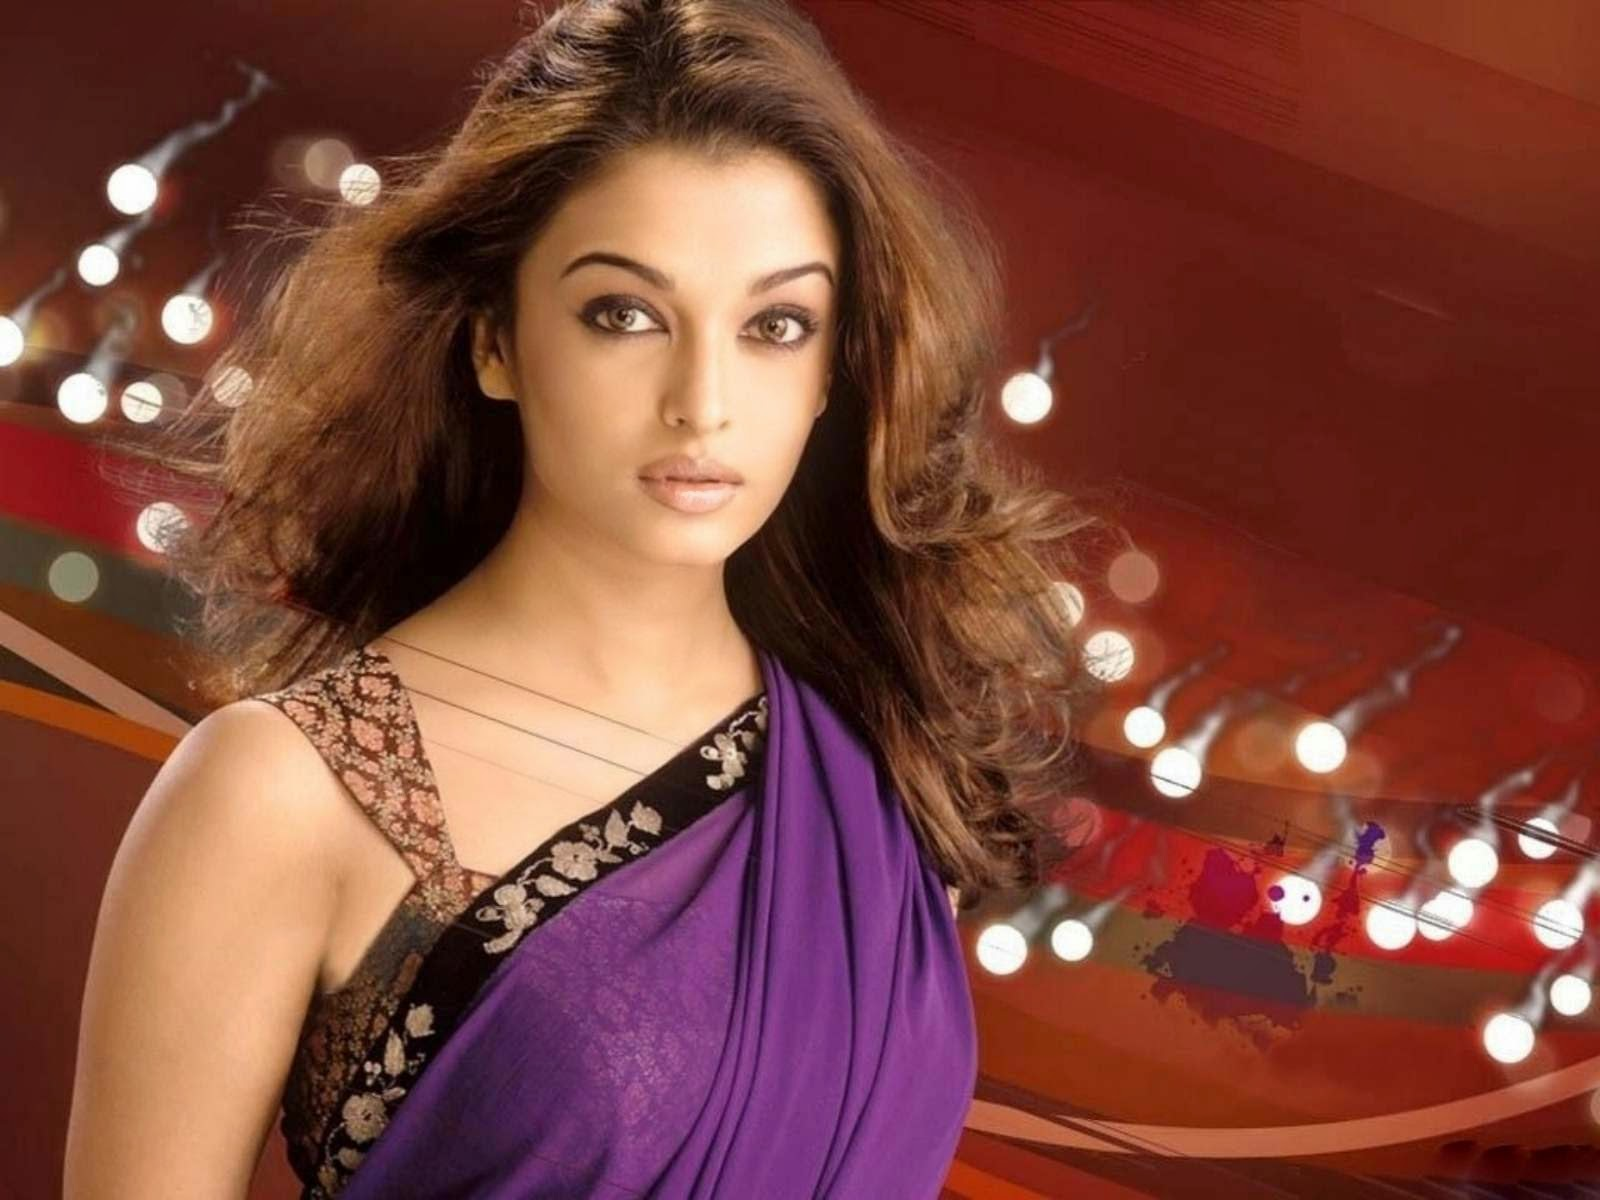 Coogled actress aishwarya rai bachan hd wallpapers - Desi actress wallpaper ...